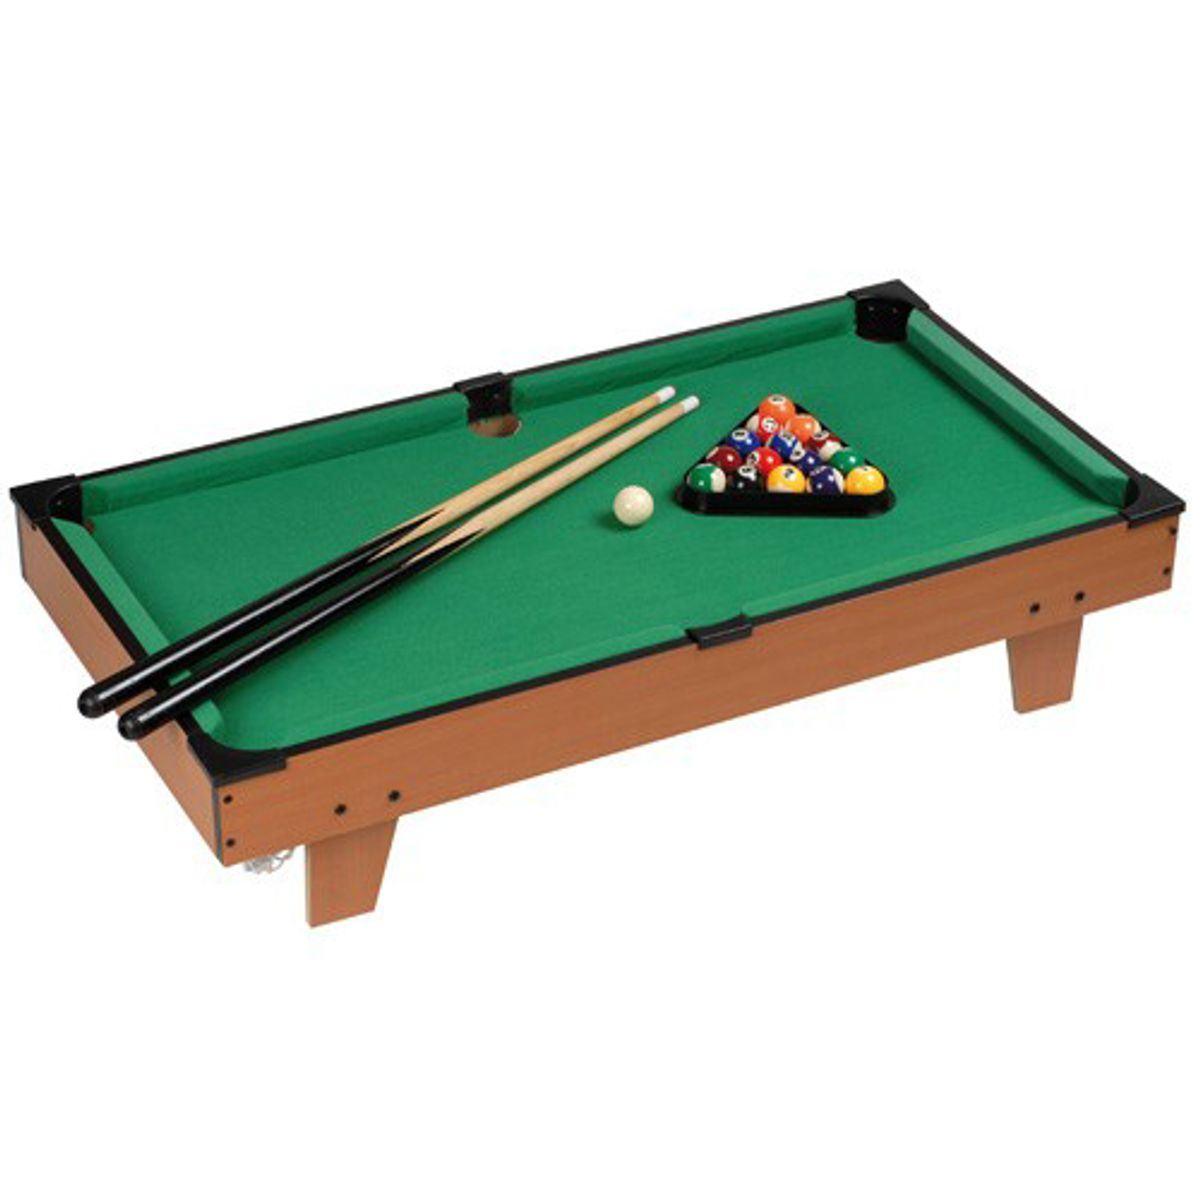 mini billard de table en bois avec brosse et craies la chaise longue decoclico. Black Bedroom Furniture Sets. Home Design Ideas